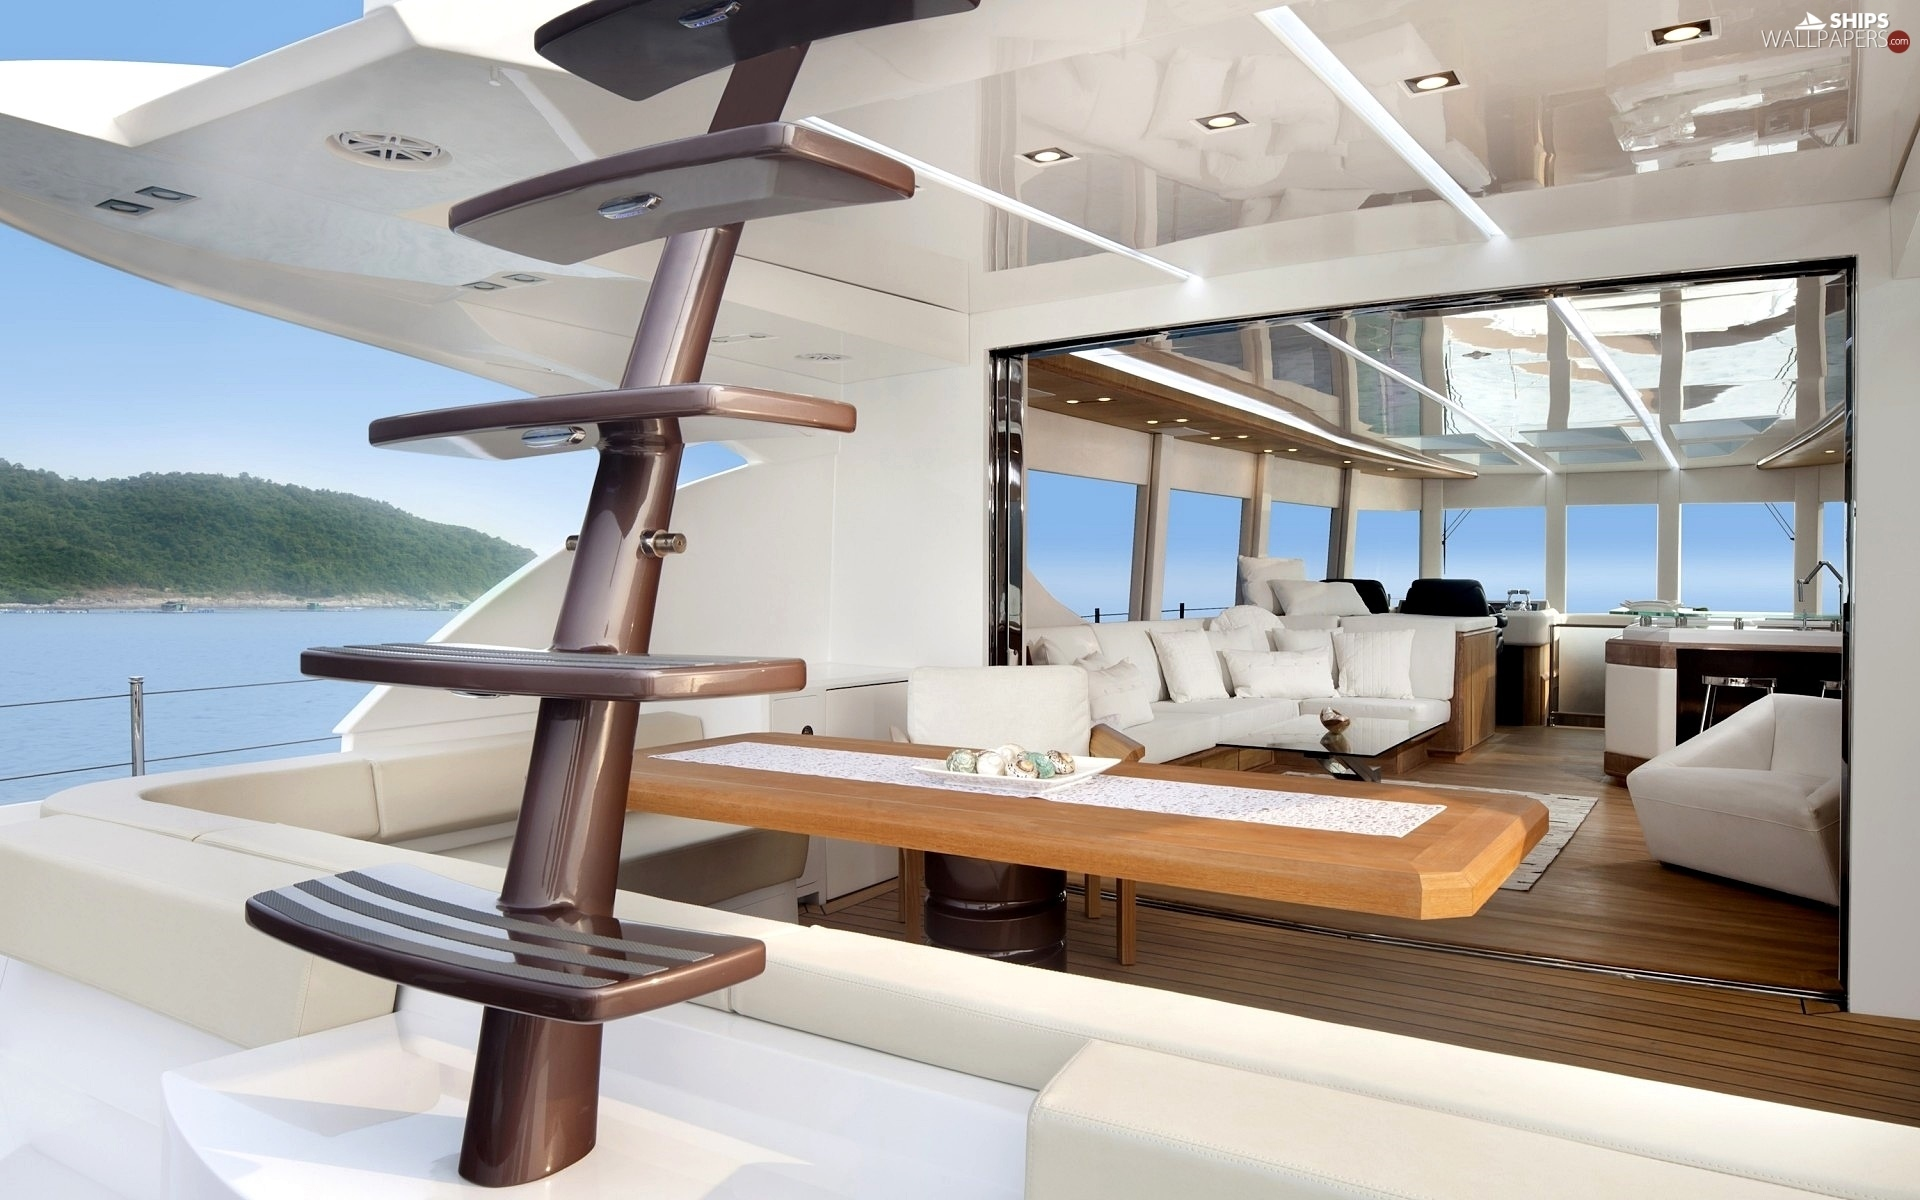 http://wewinelovers.wehomeowners.com/wp-content/uploads/2016/07/Yacht-Photo_001.jpg